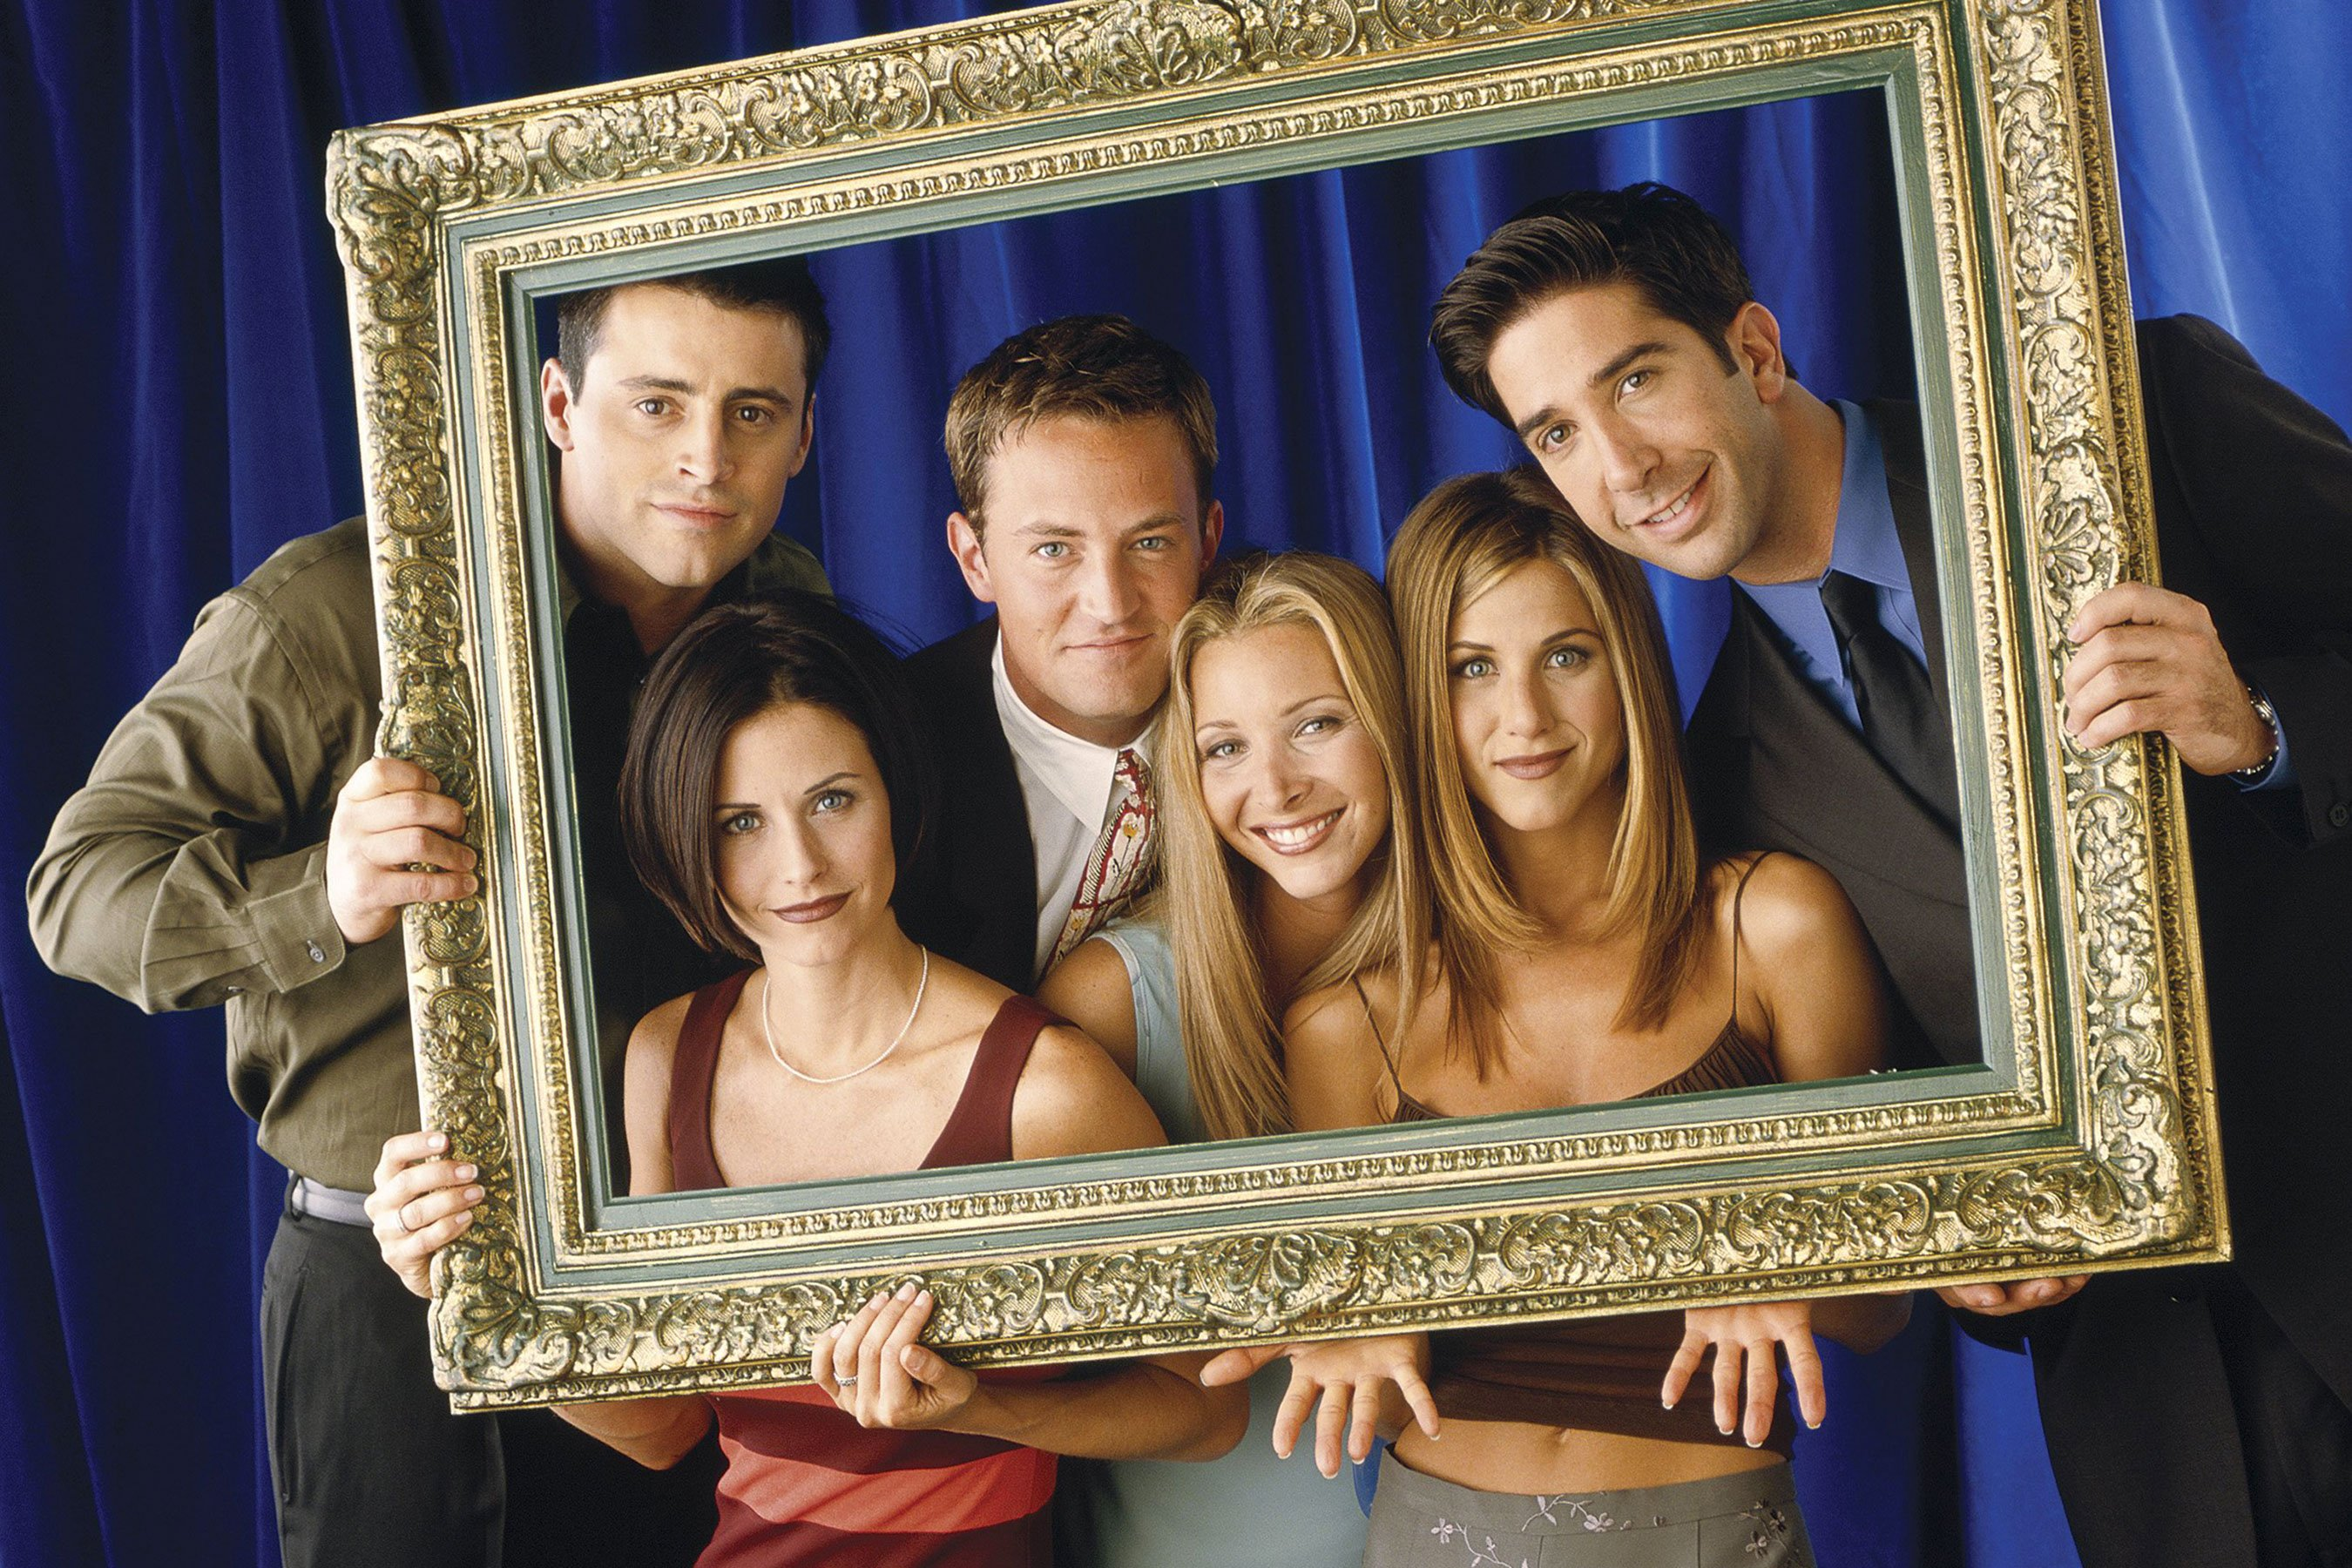 Friends: See photos of the cast before they made it